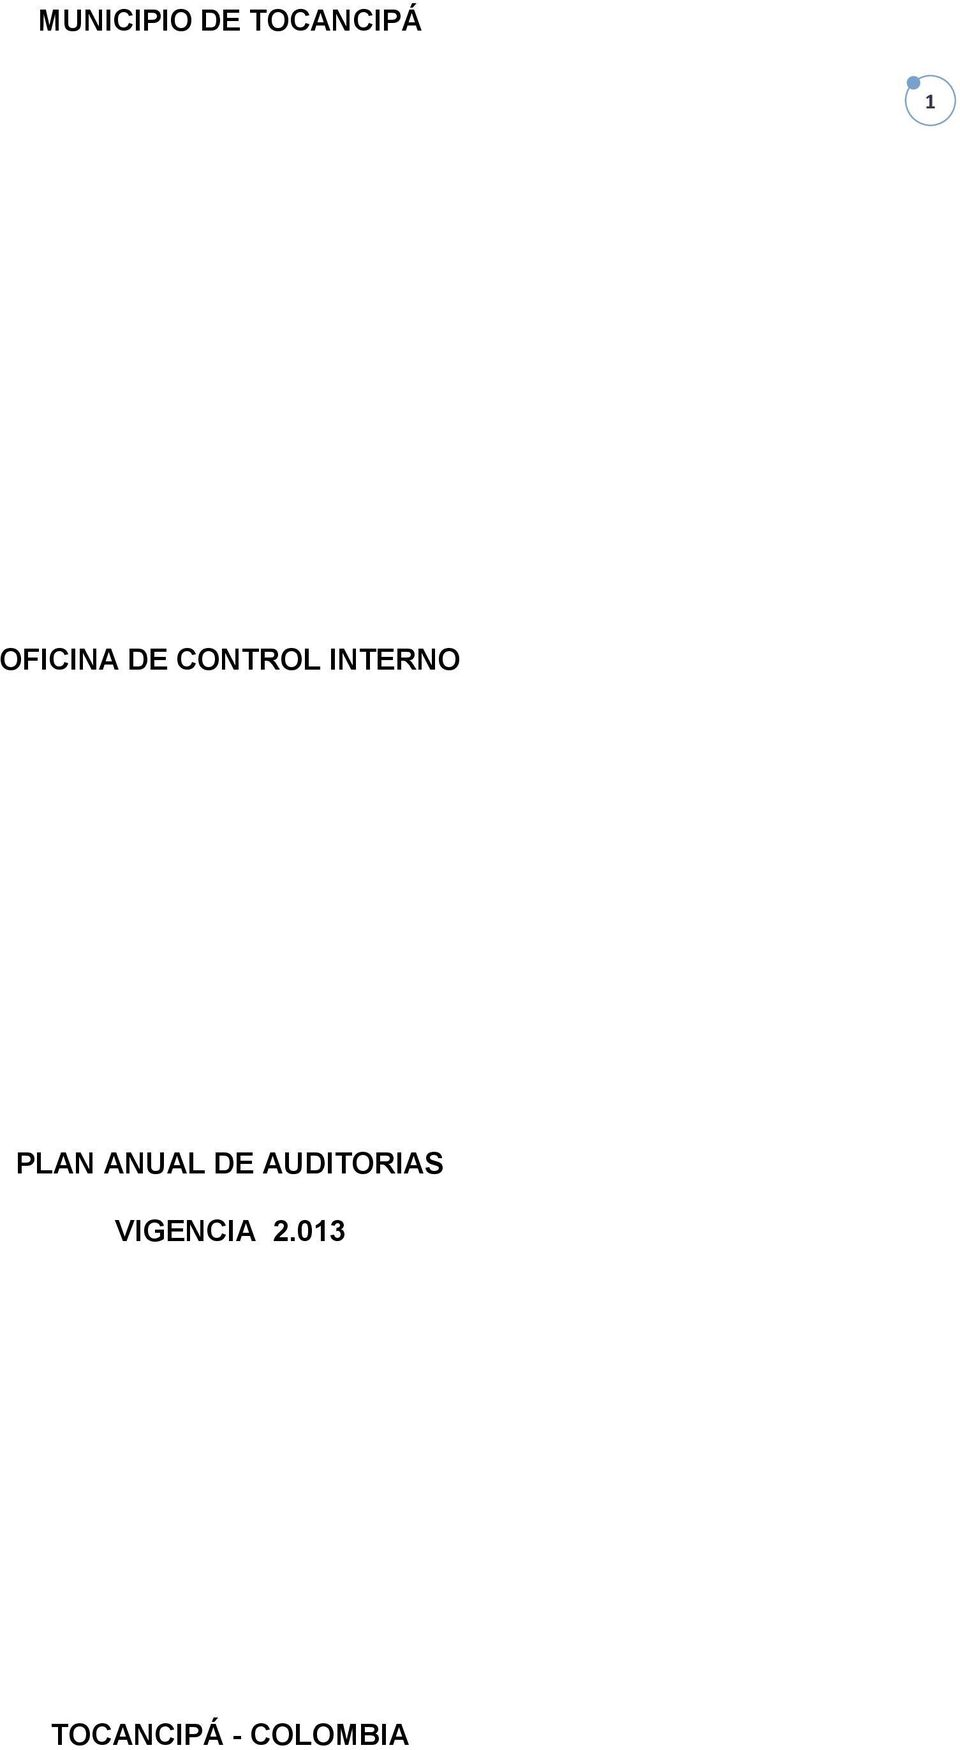 PLAN ANUAL DE AUDITORIAS